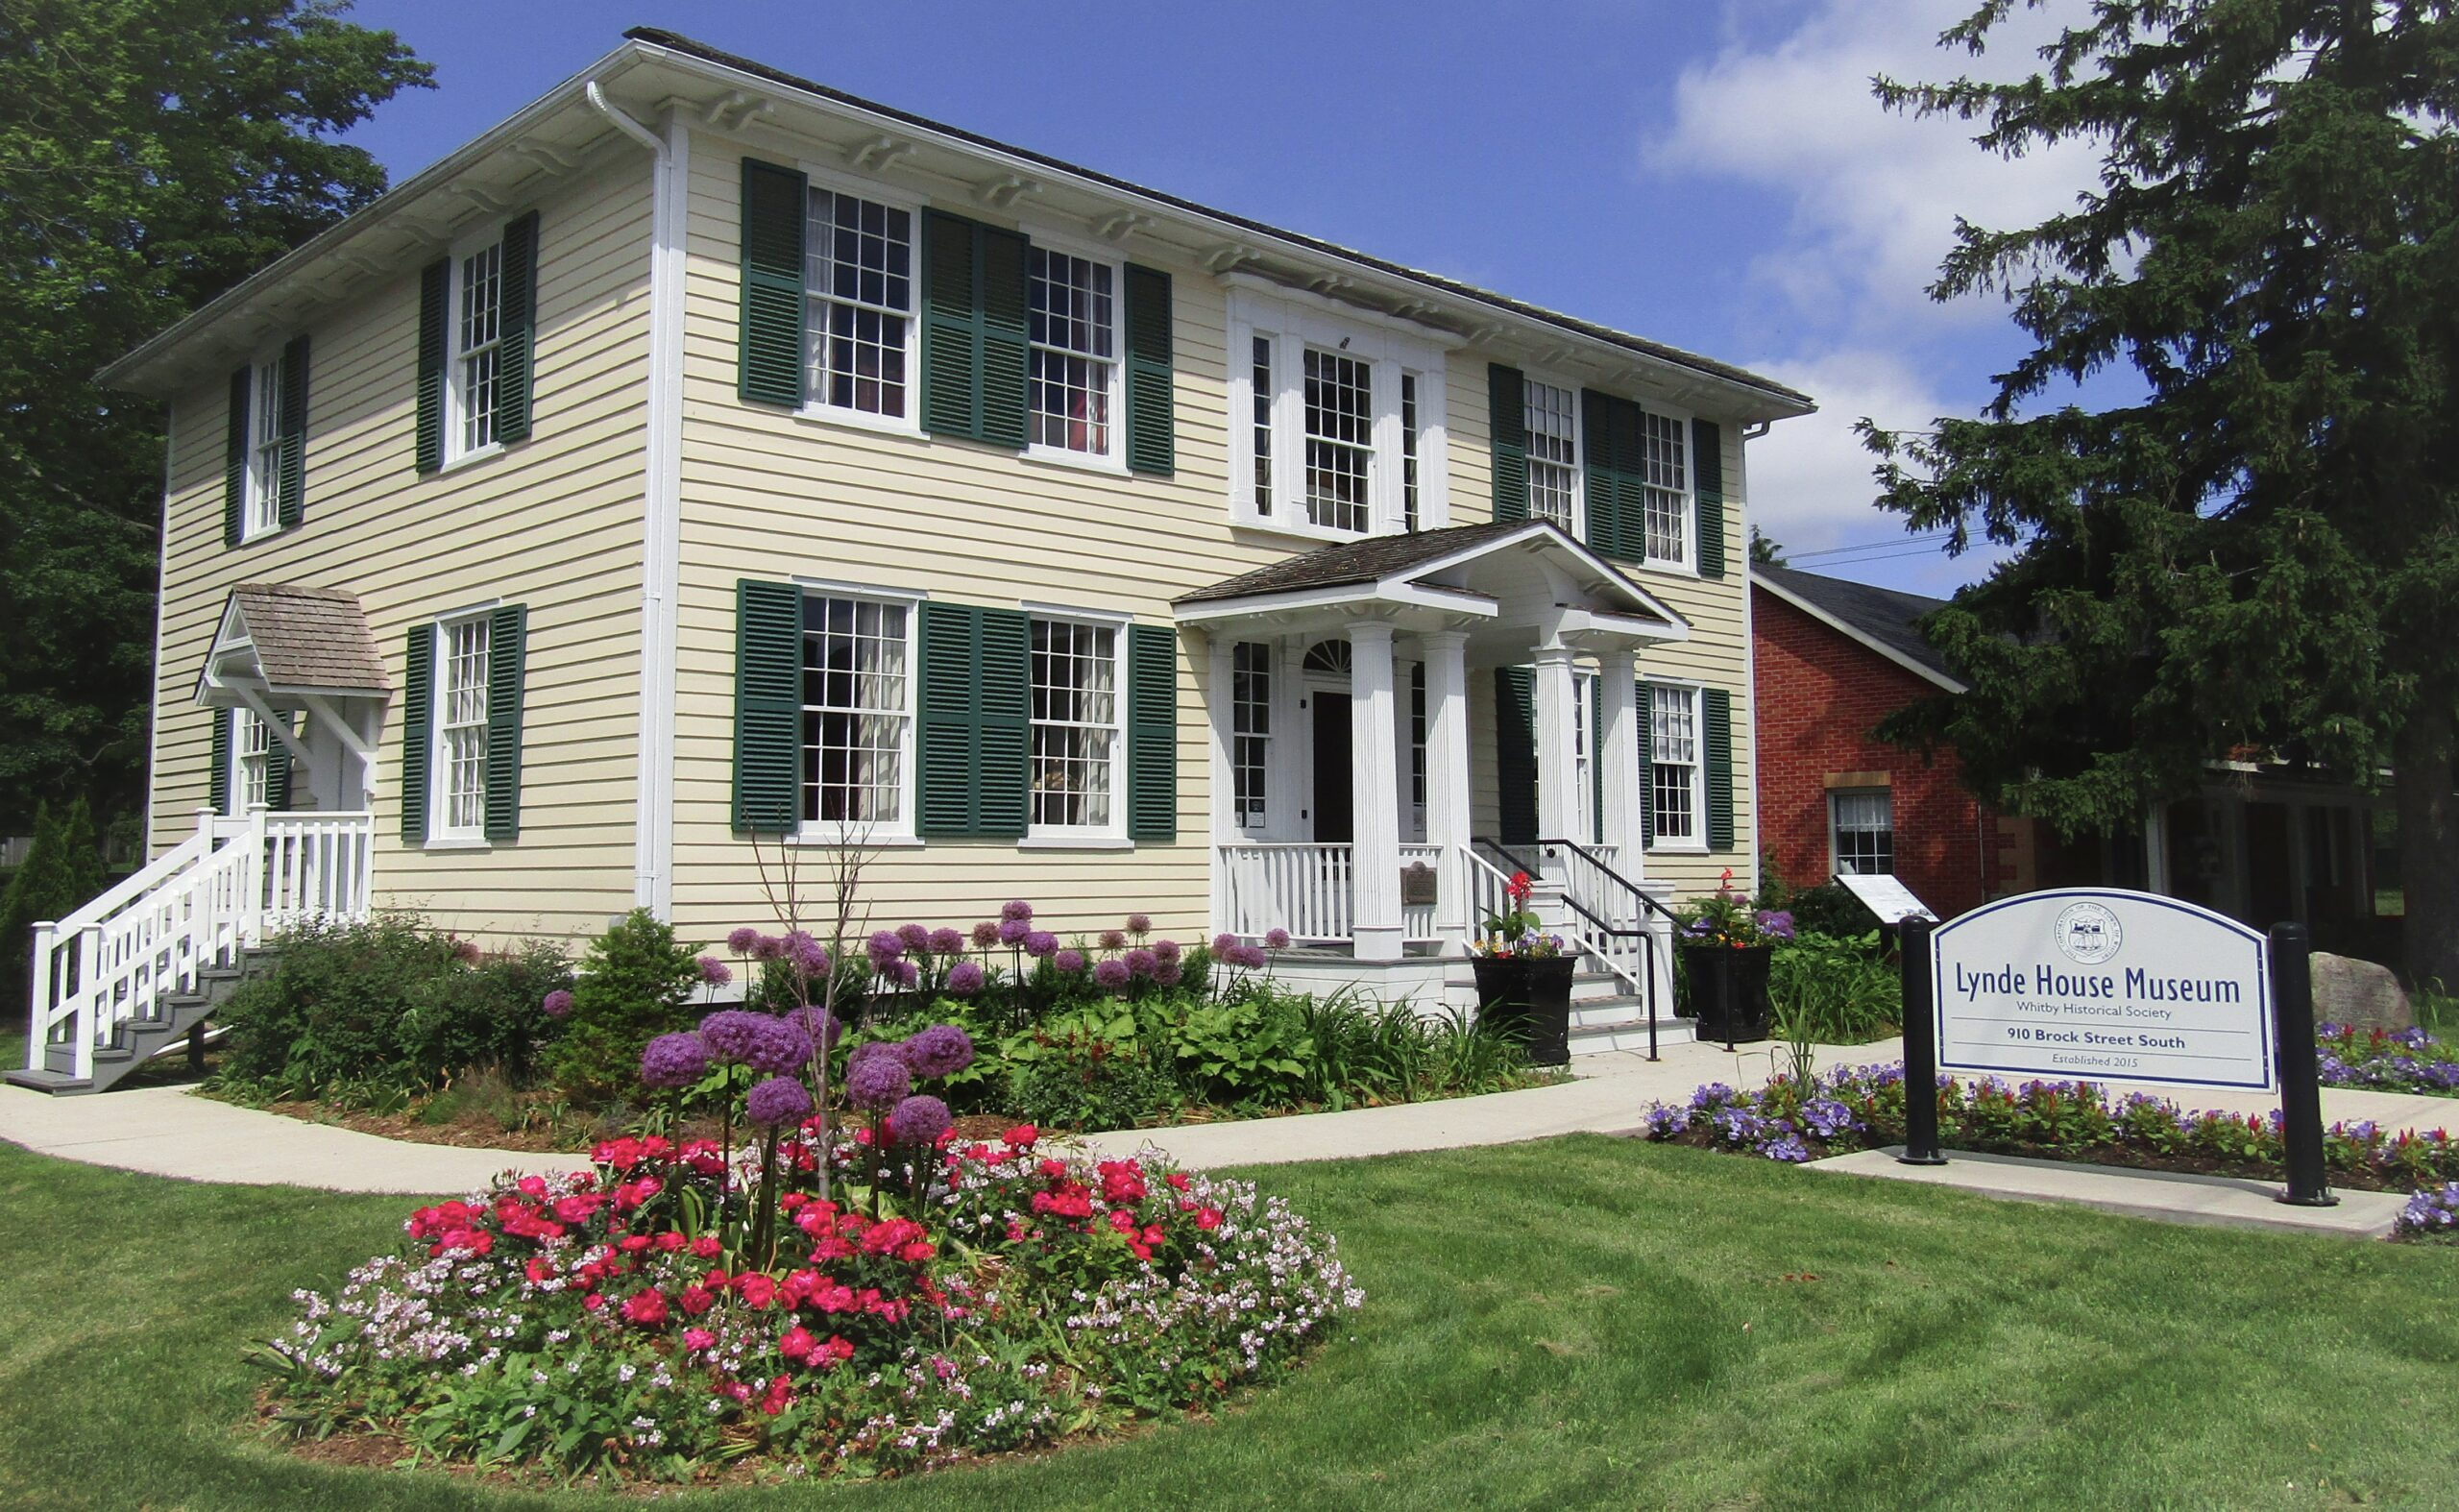 Lynde House Museum & Warren General Store